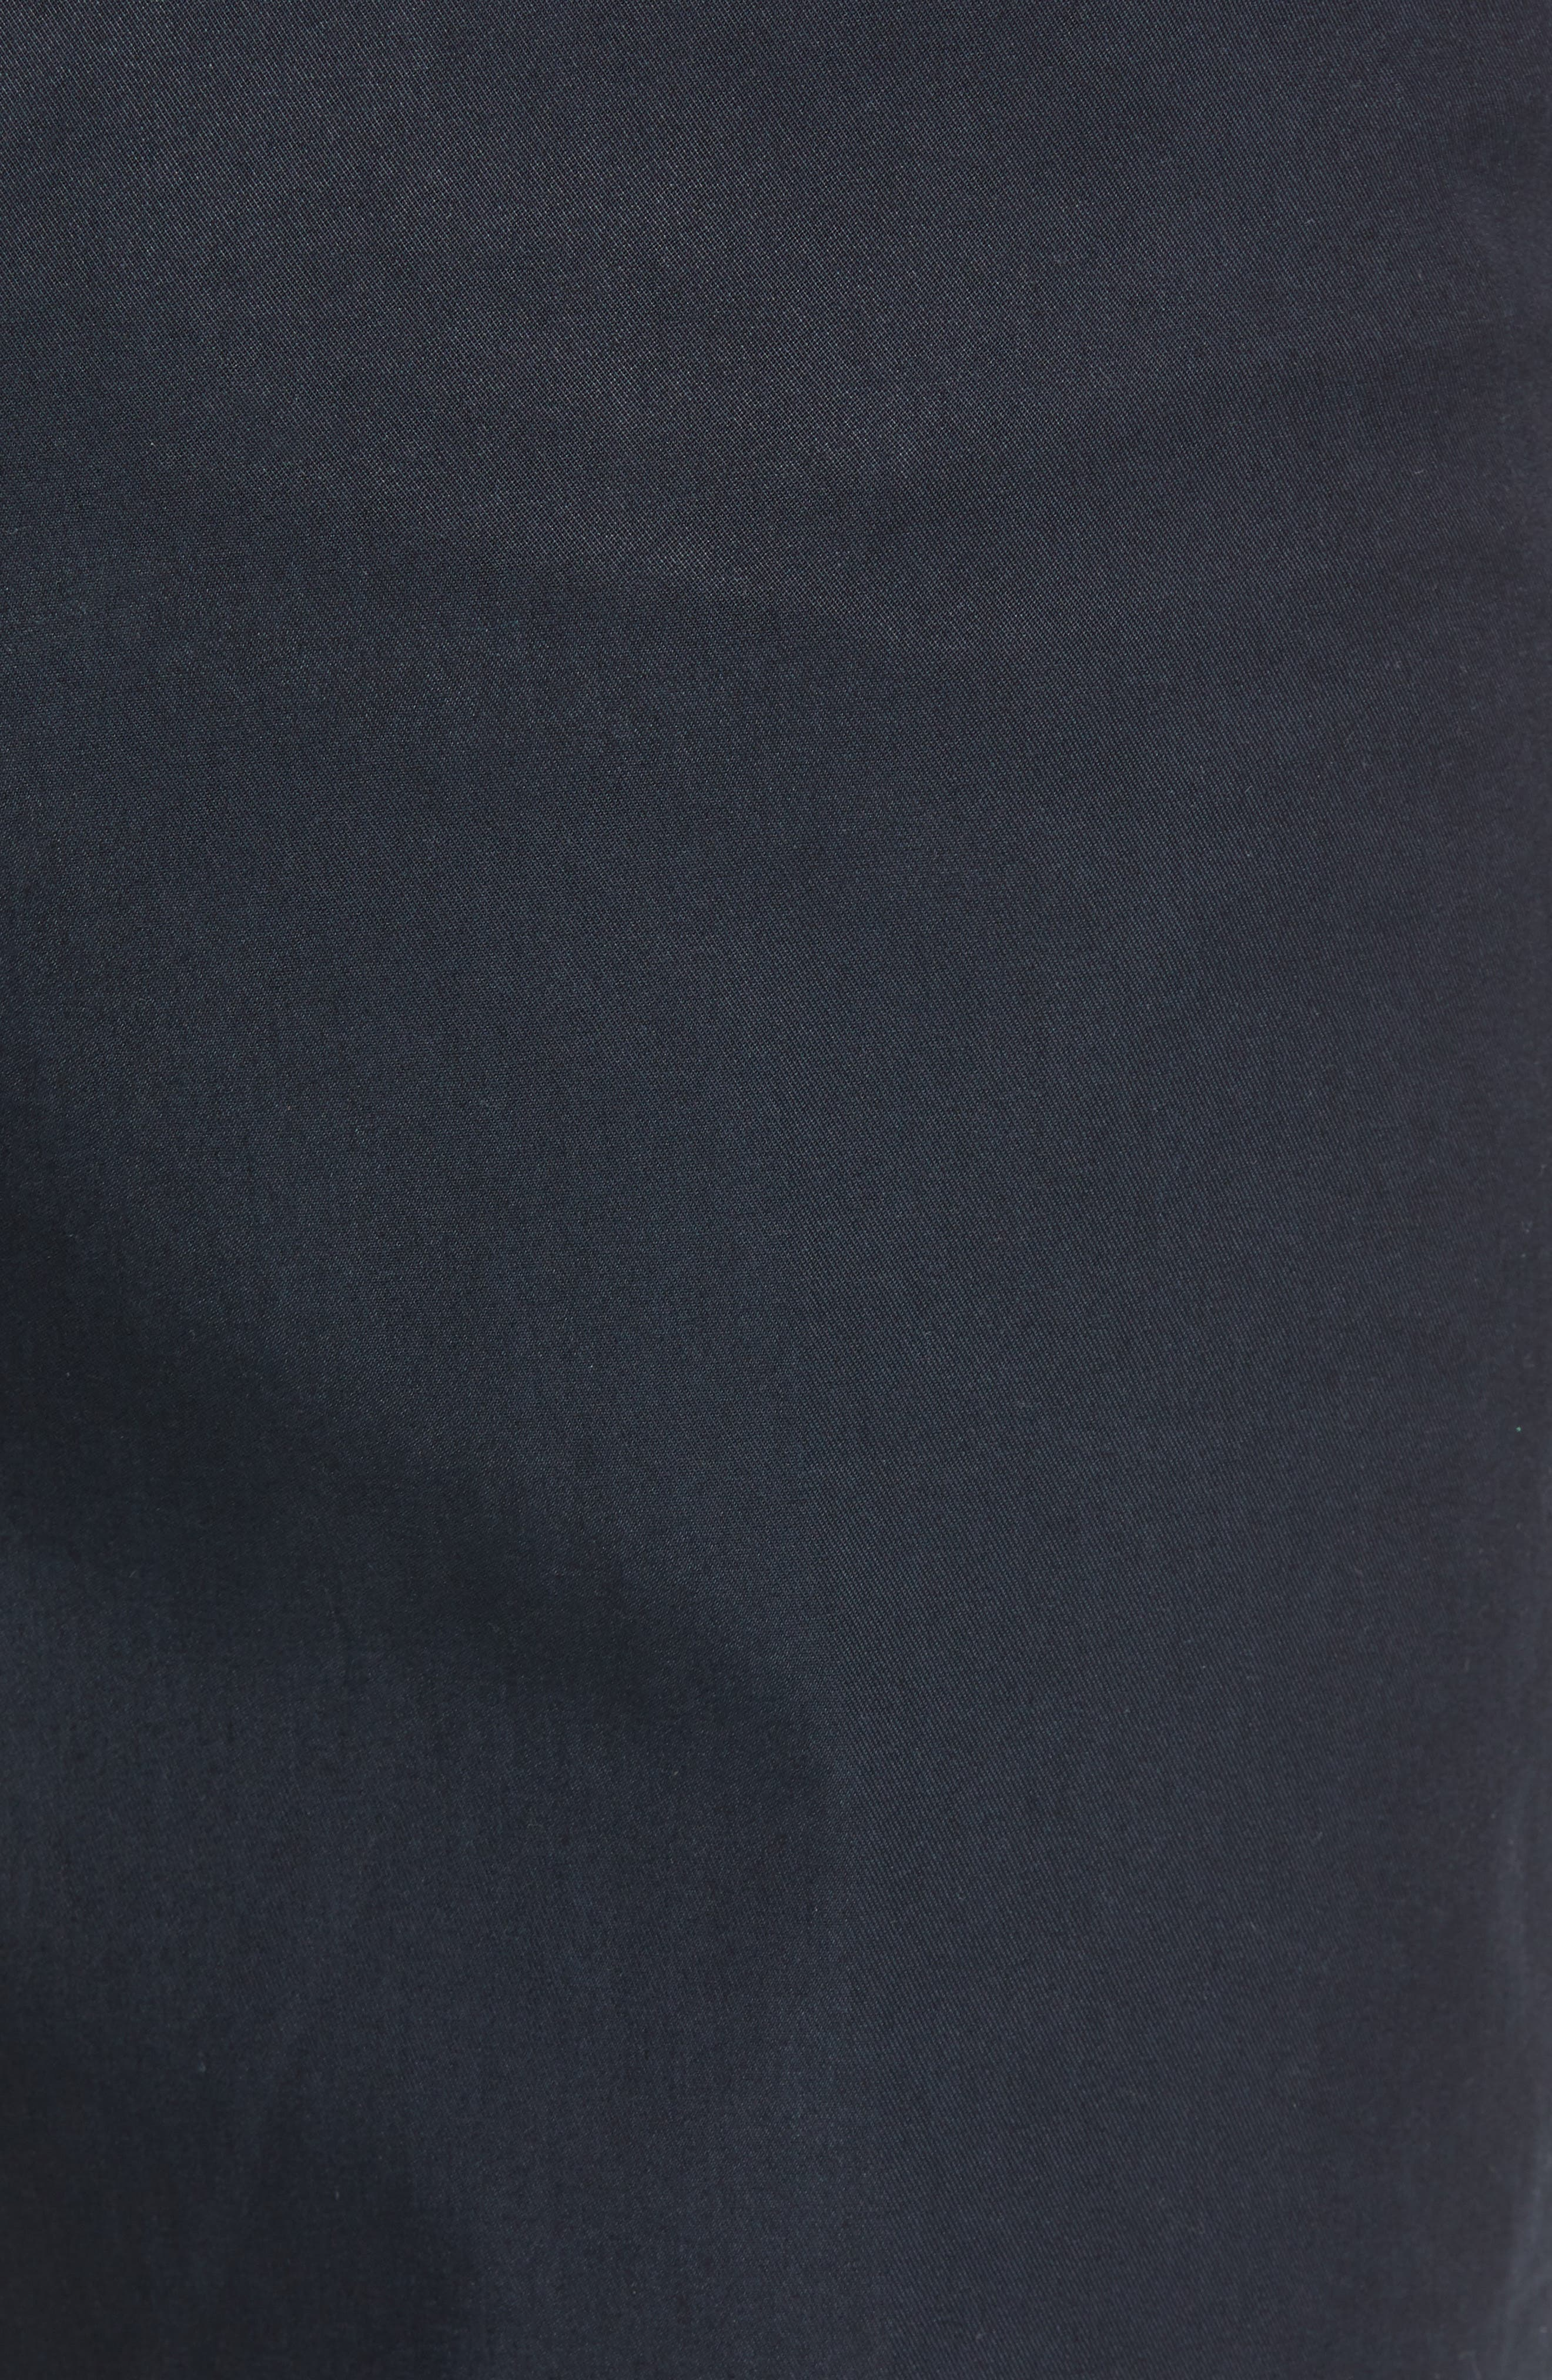 M2 Classic Fit Flat Front Travel Twill Pants,                             Alternate thumbnail 5, color,                             Navy